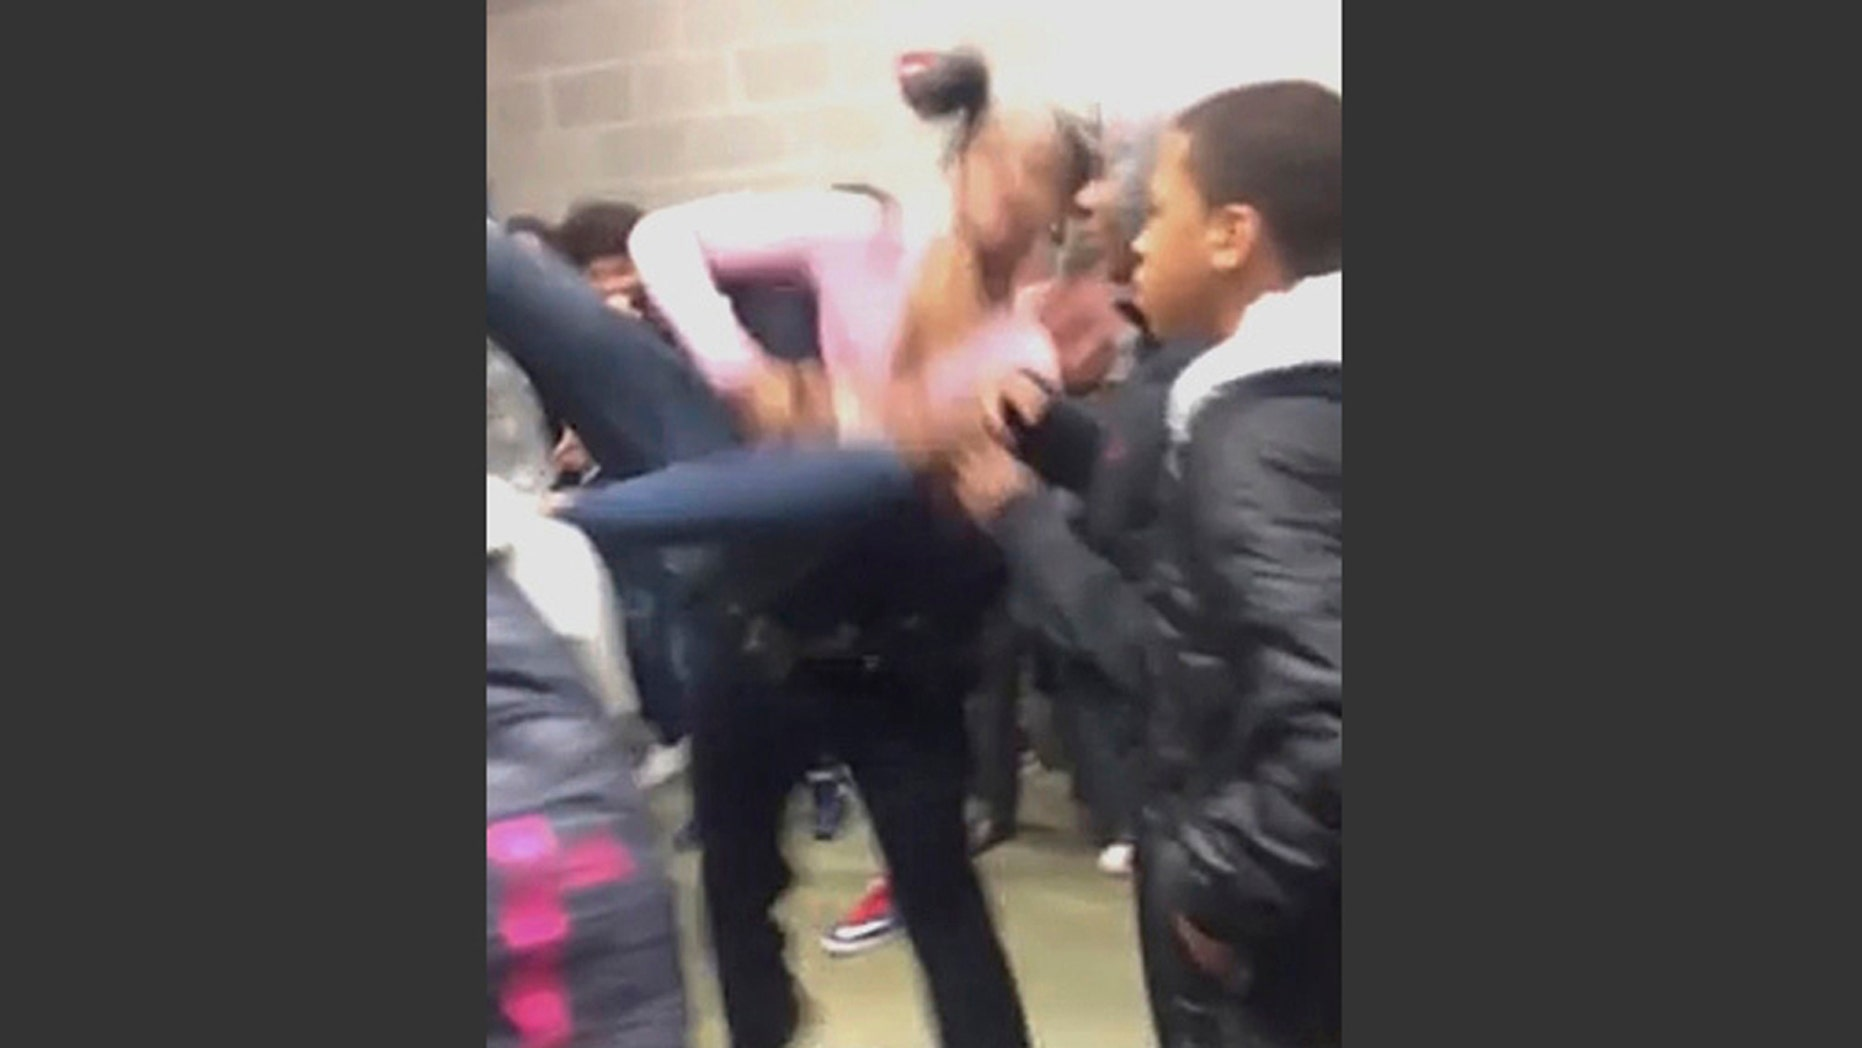 In this Tuesday, Jan. 3, 2017, image made from video and released by Pam C. Akpuda, officer Ruben De Los Santos of the Rolesville Police Department slams a teenage girl to the floor in Rolesville, N.C.